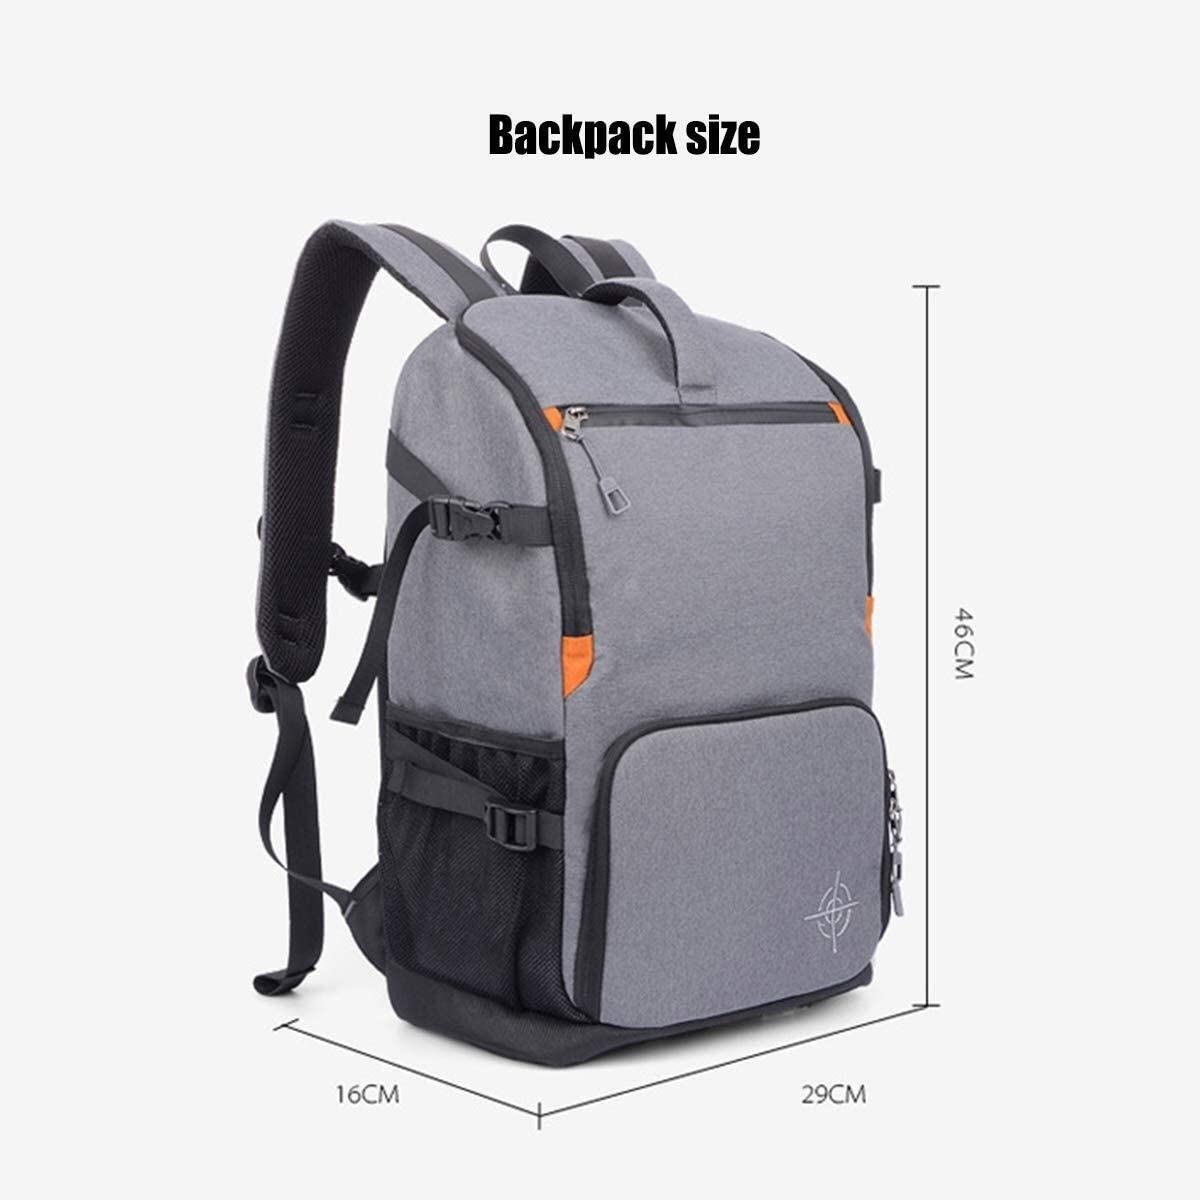 29 X 16 X 46cm Black Exquisite Qingbaotong Personality Multi-Functional Large-Capacity Camera Backpack Suitable for Scaffolding Lenses and Accessories Large-Capacity Storage Backpack